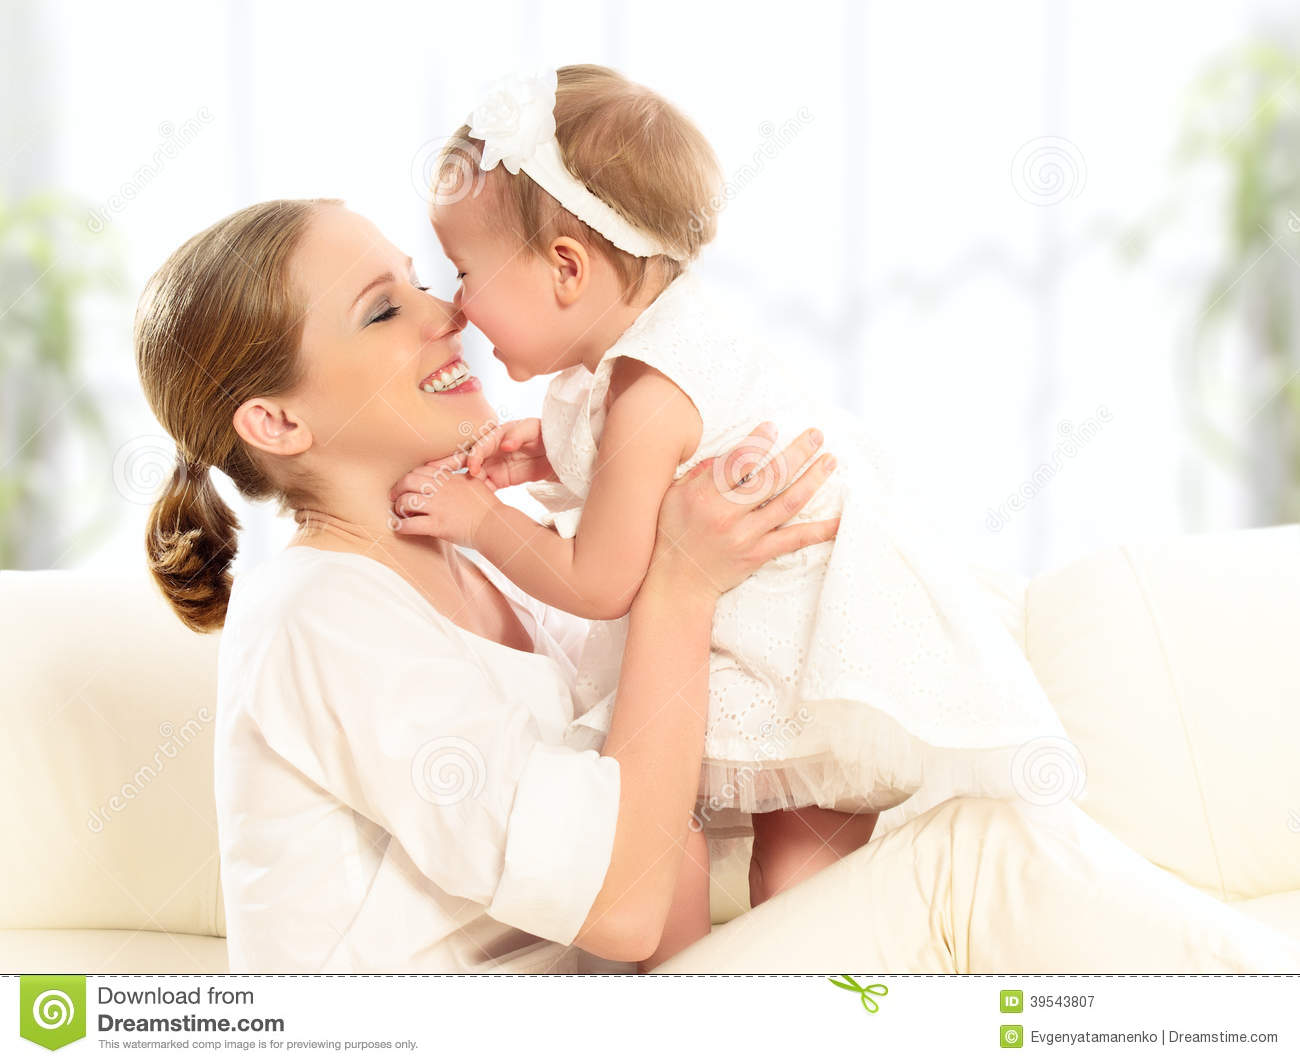 Happy family. Mother and baby daughter plays, hugging, kissing